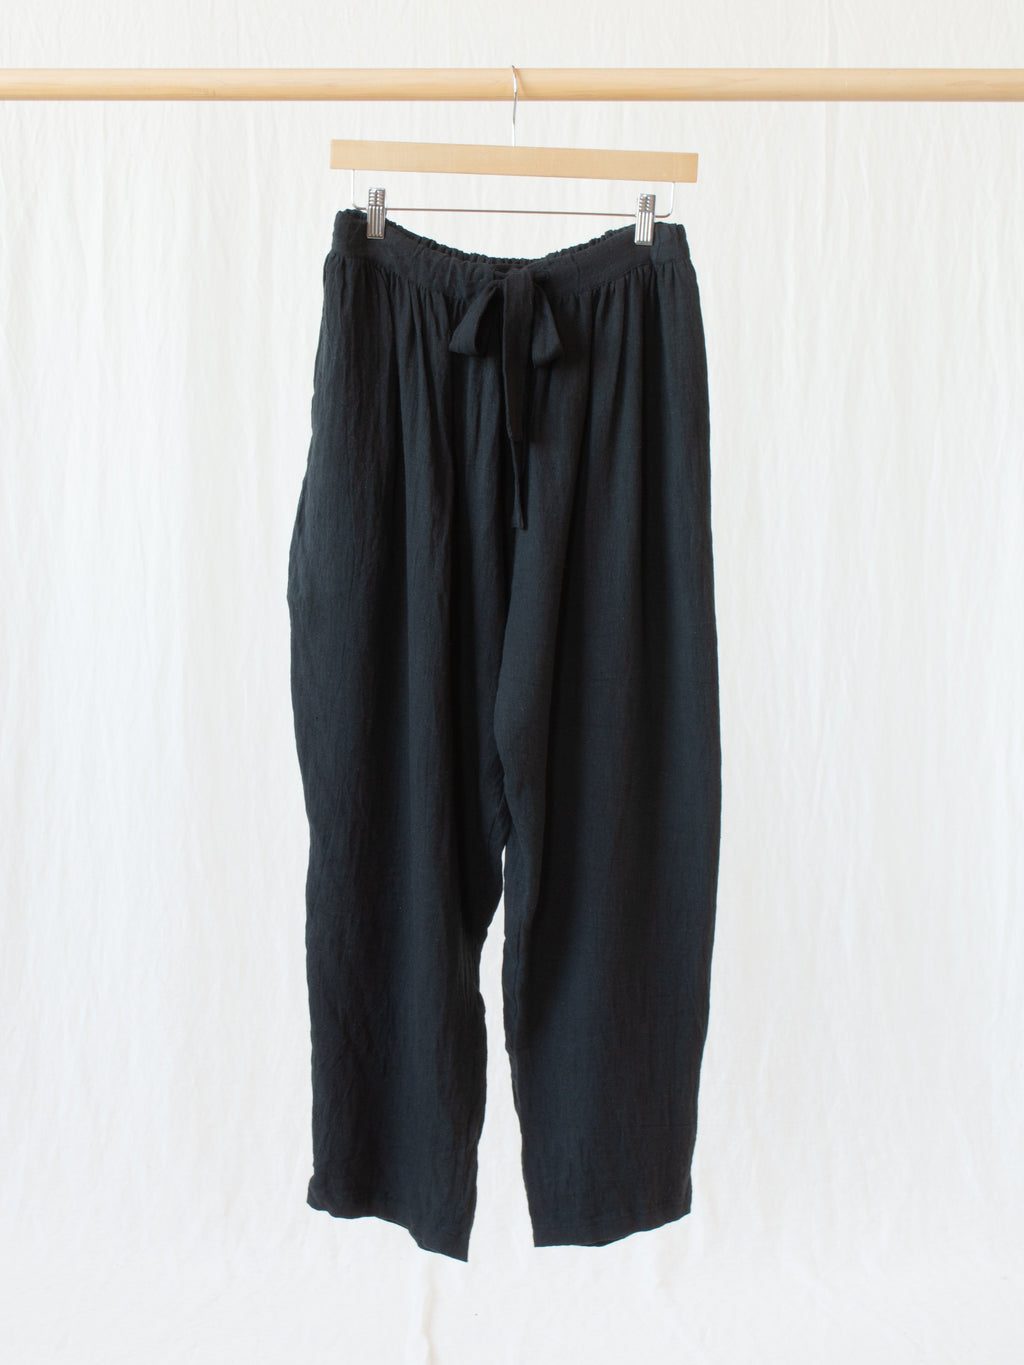 Namu Shop - Ichi Antiquites AZUMADAKI Linen Pants - Black